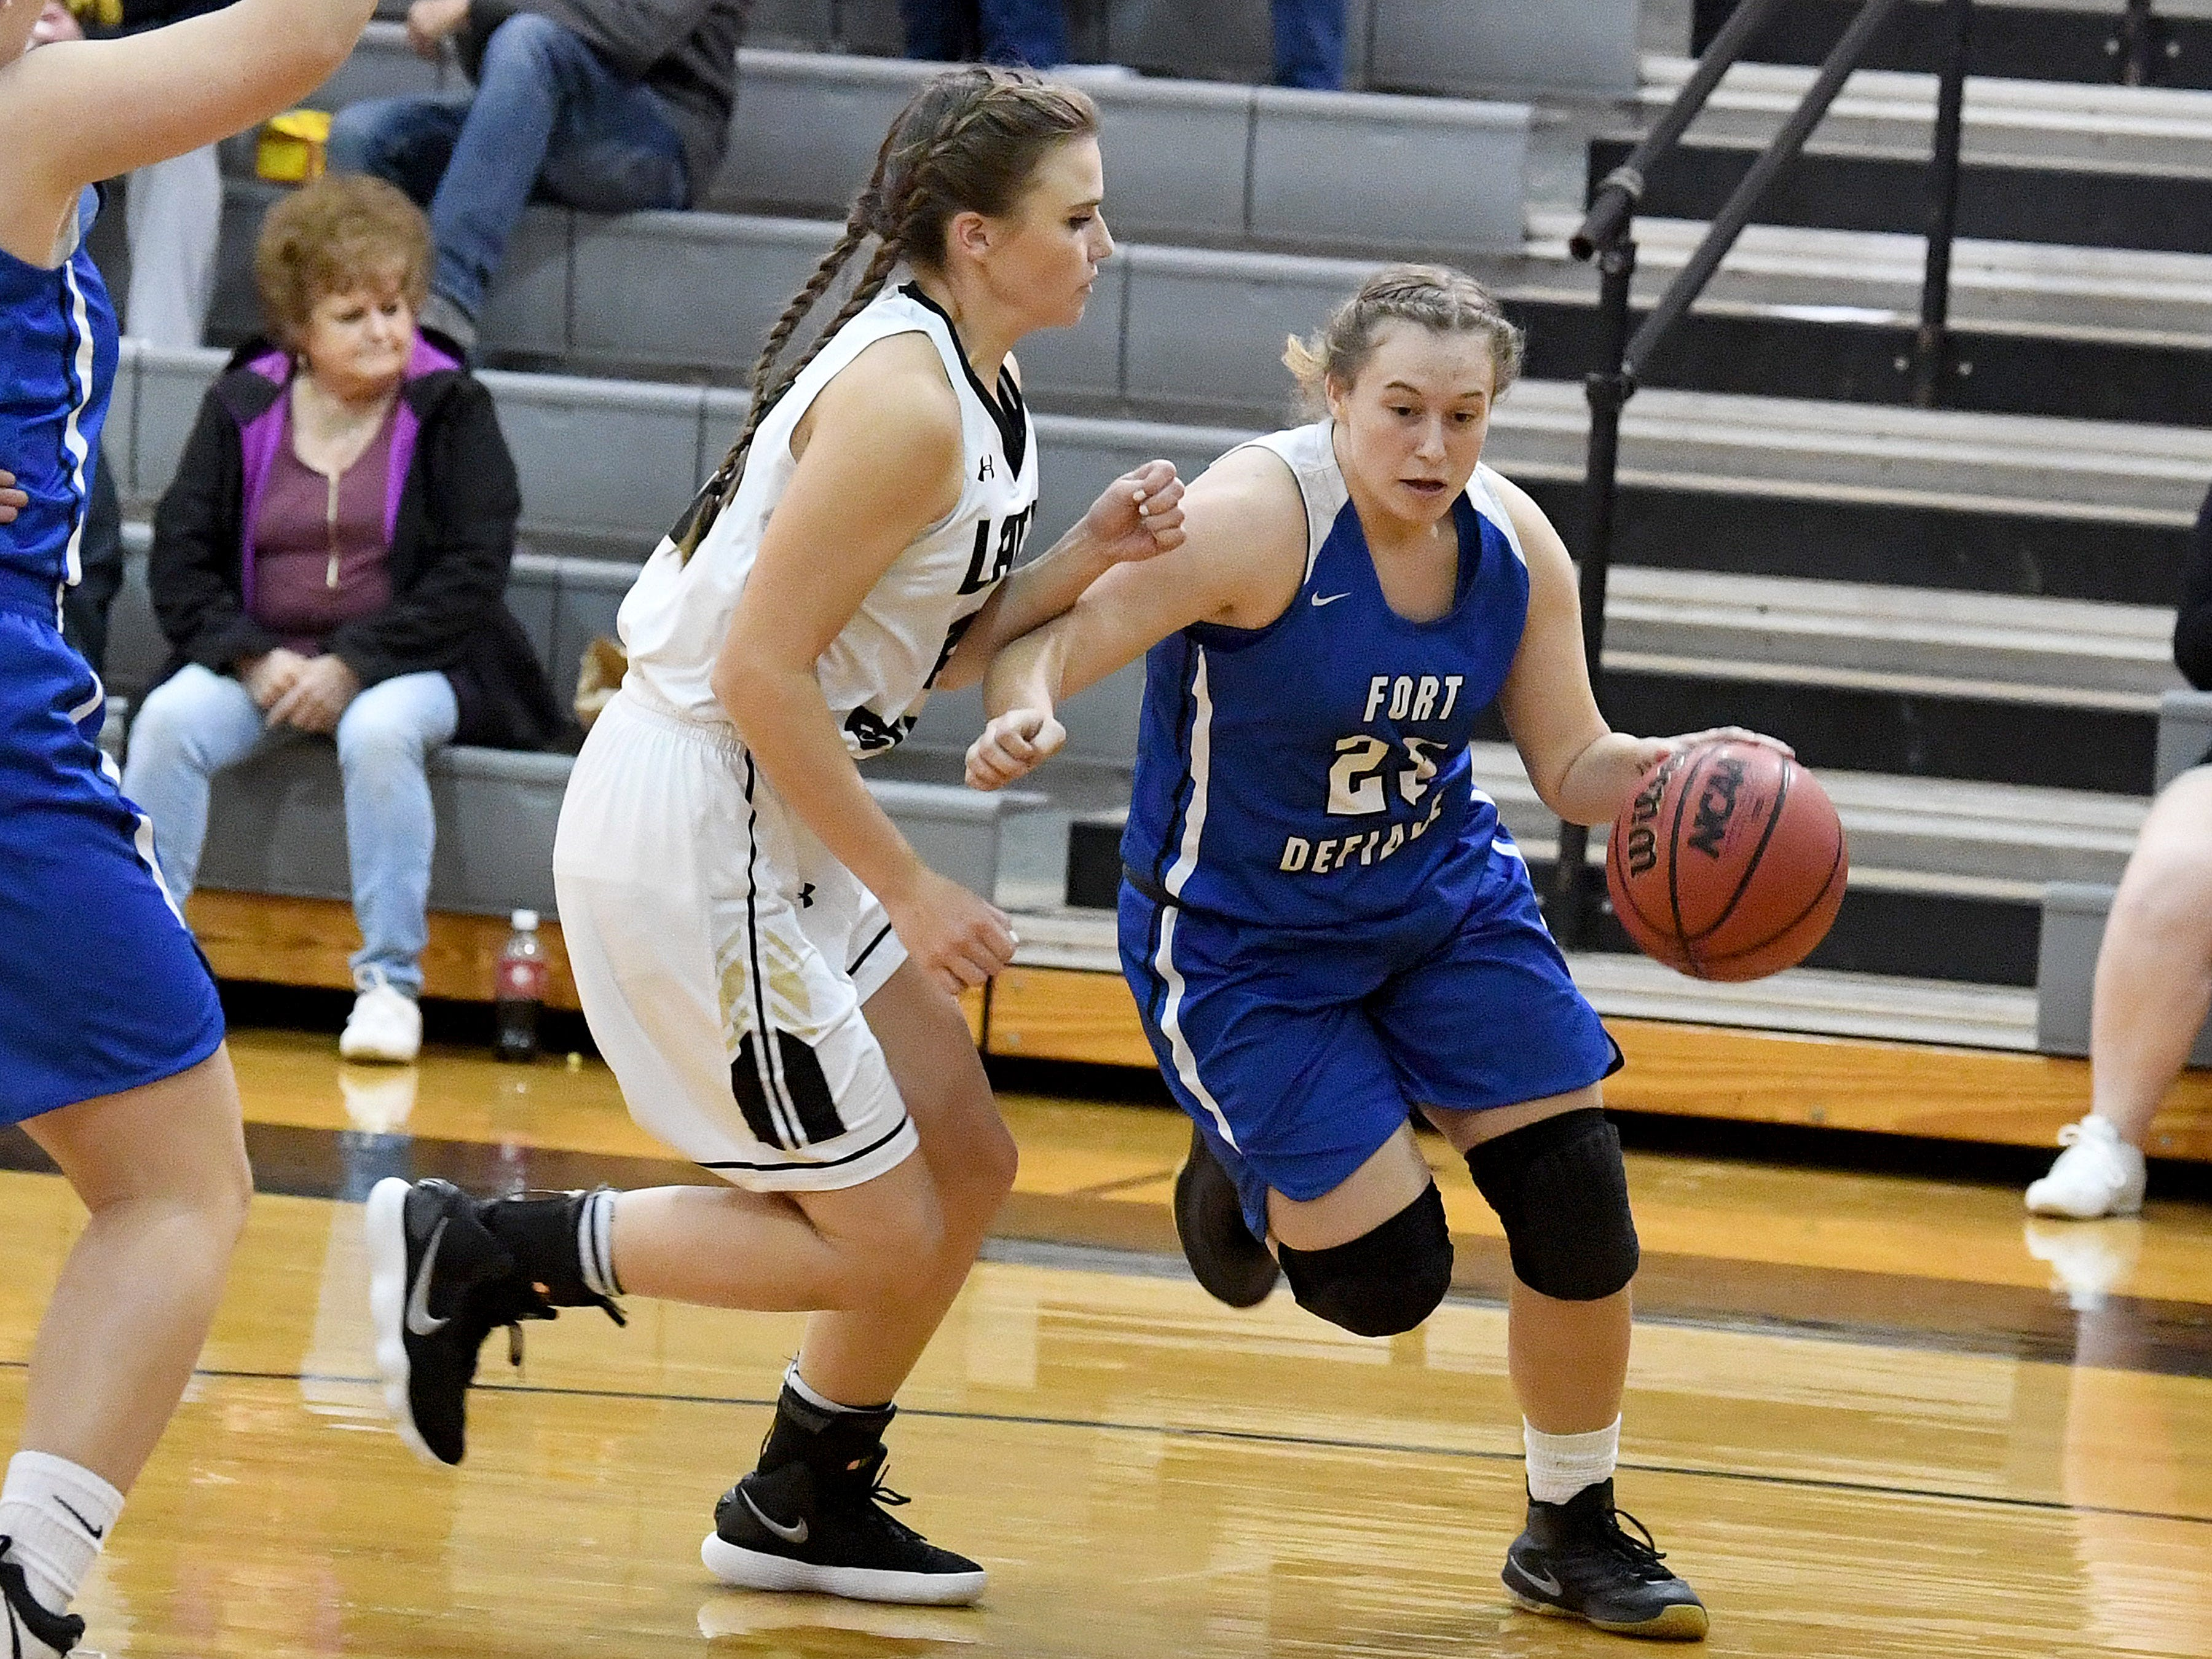 Fort Defiance's Meredith Lloyd looks to take the ball around Buffalo Gap's Sydney Digman during a game played in Swoope on Wednesday, Dec. 5, 2018.